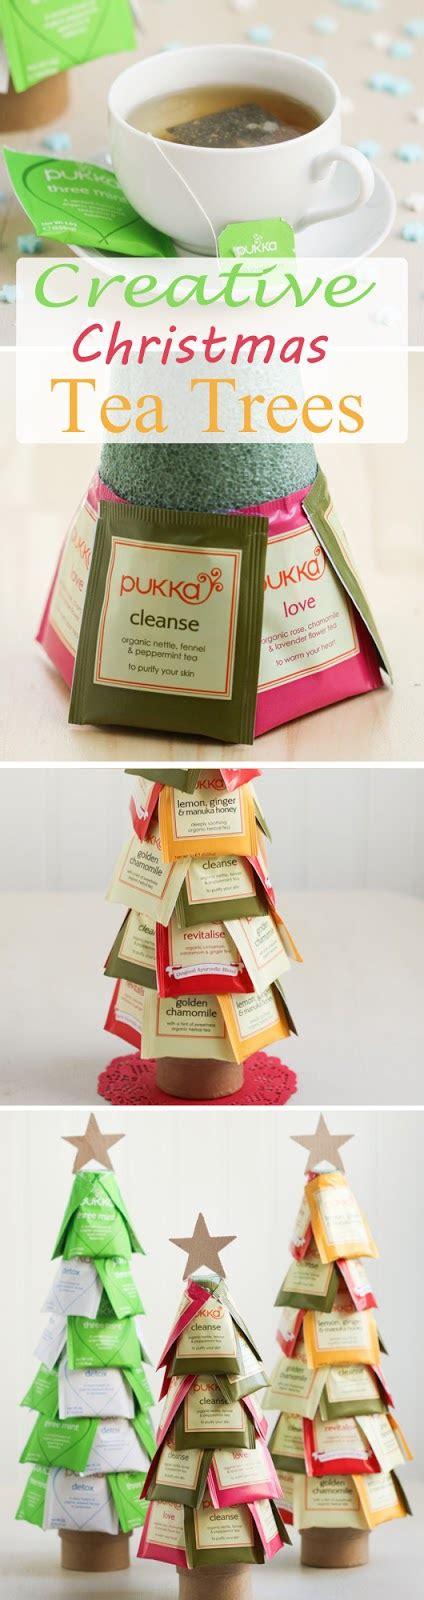 diy easy chrismas gifts 14 year old creative tea trees stunning collection